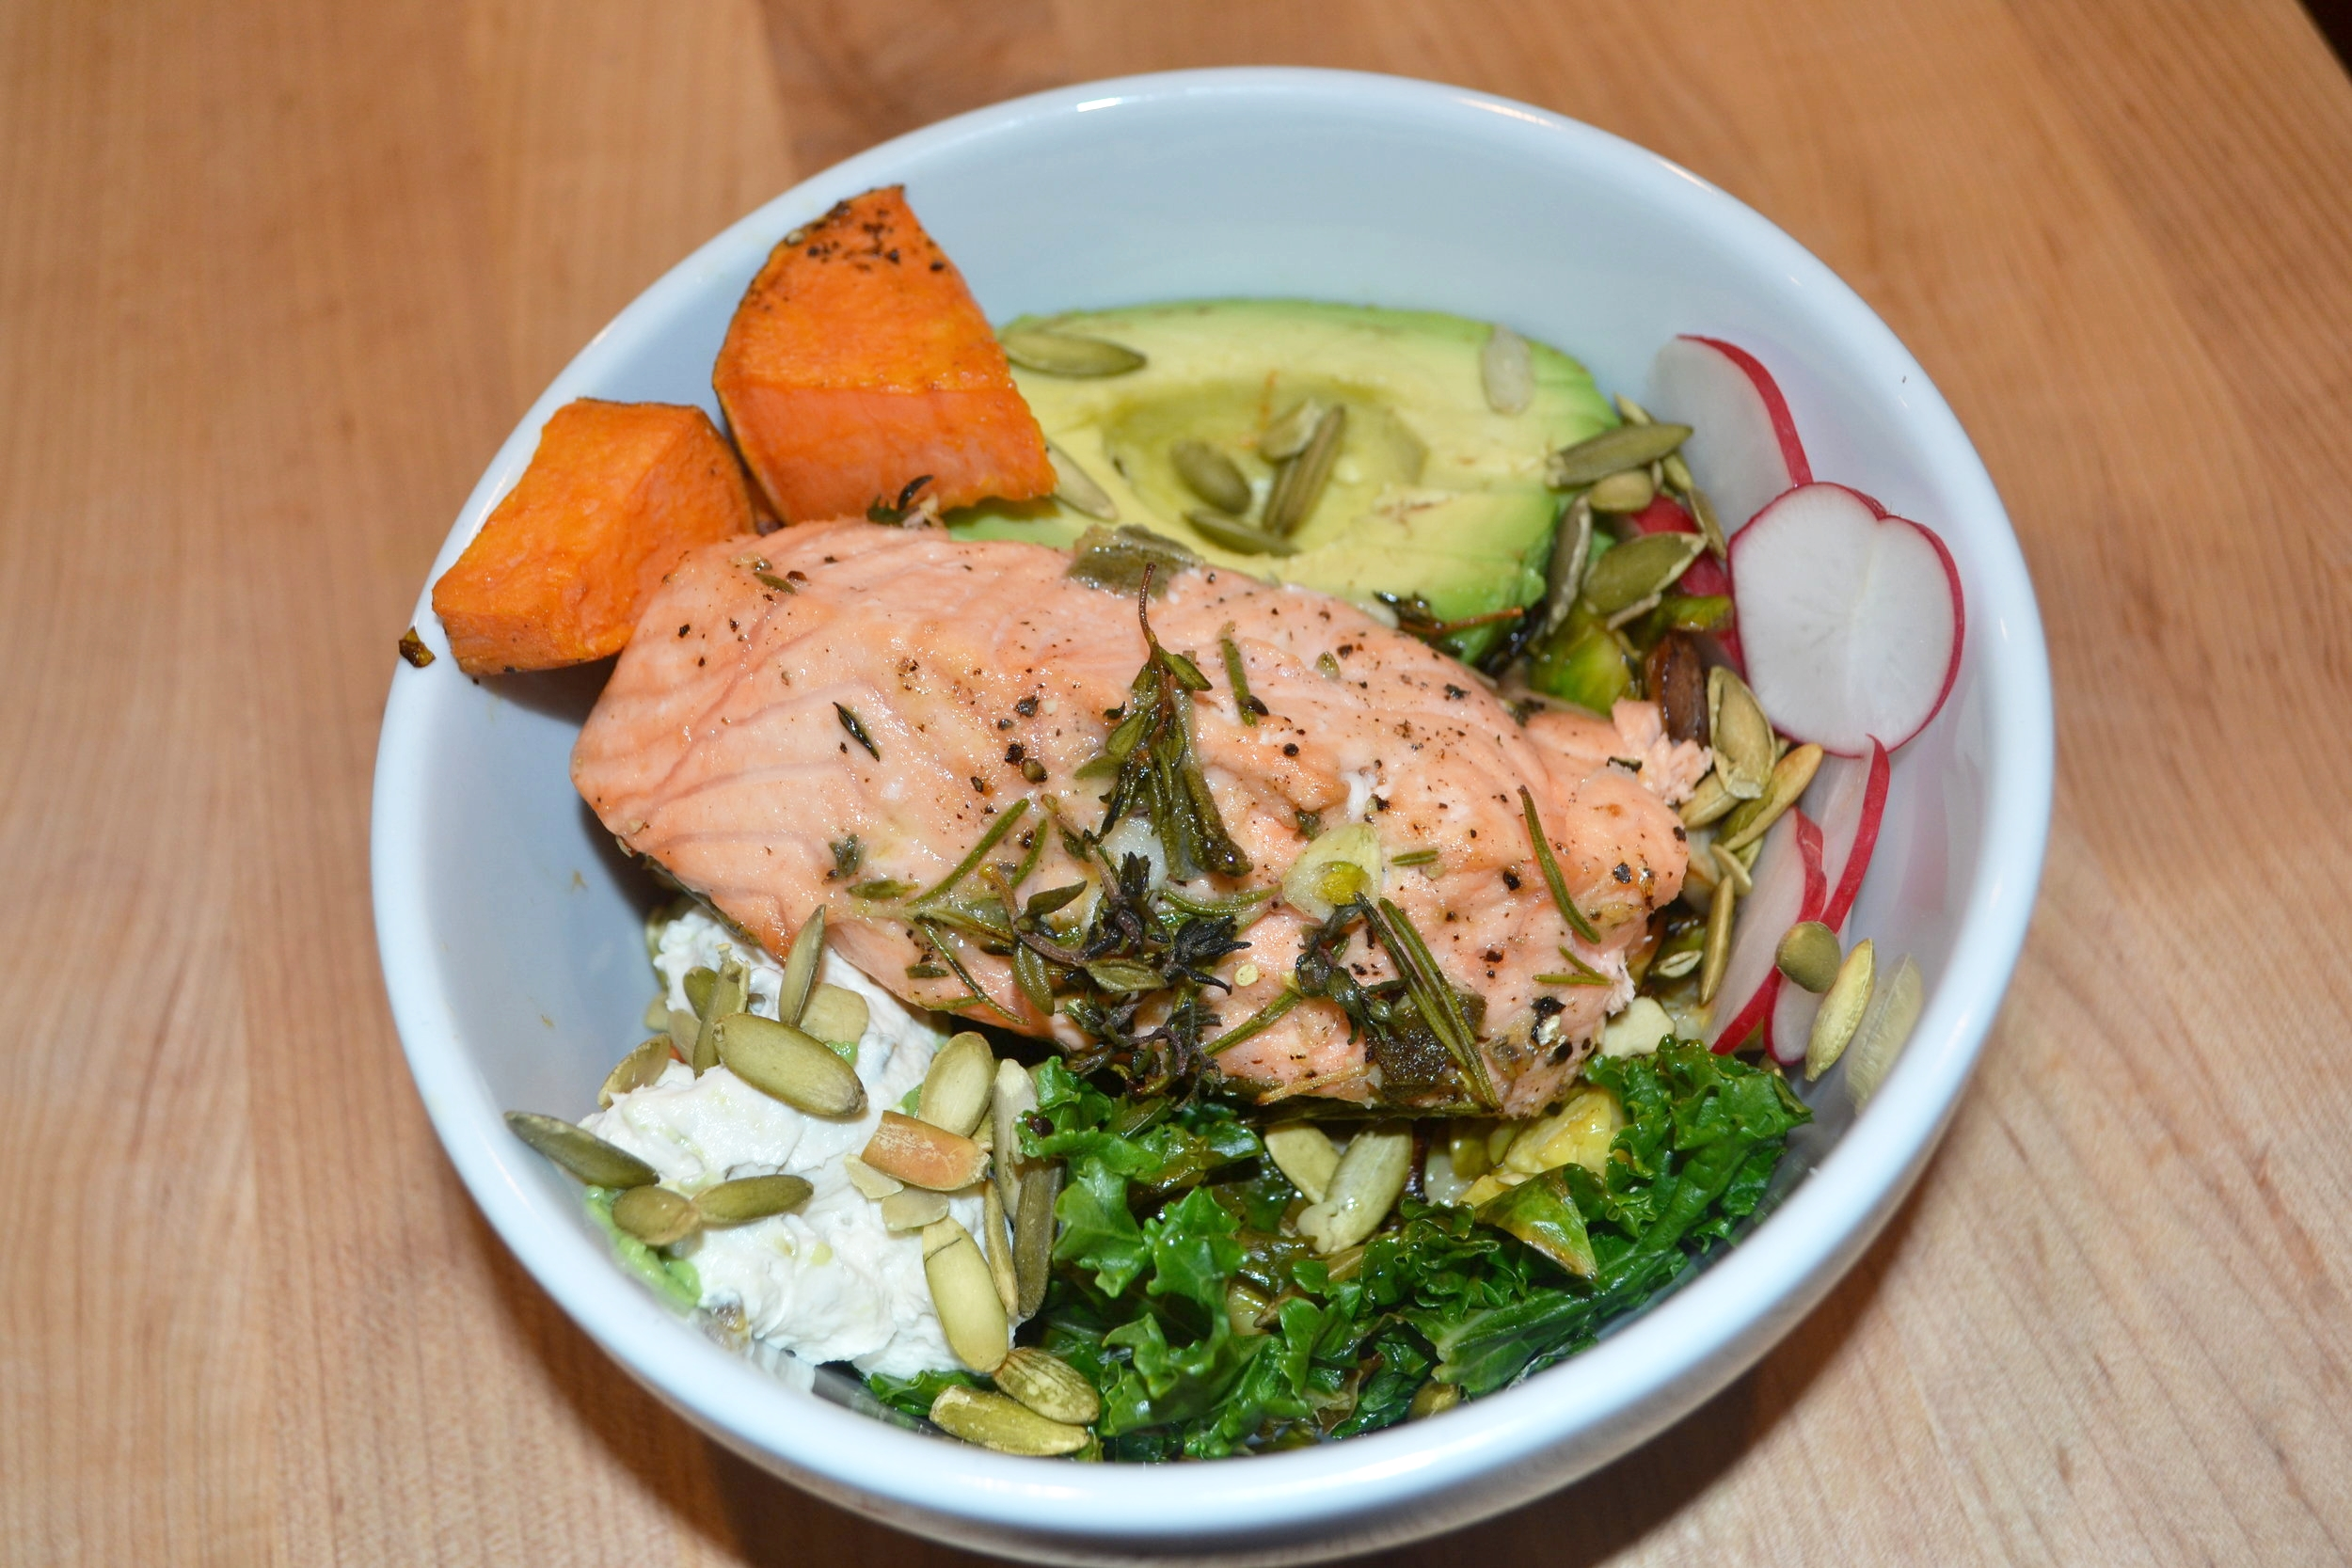 Wild caught salmon is an excellent source of vitamin B12, anti-inflammatory omega-3 fatty acids, protein, hormonal balancing enzymes, heart healthy vitamins, and bone building vitamins.